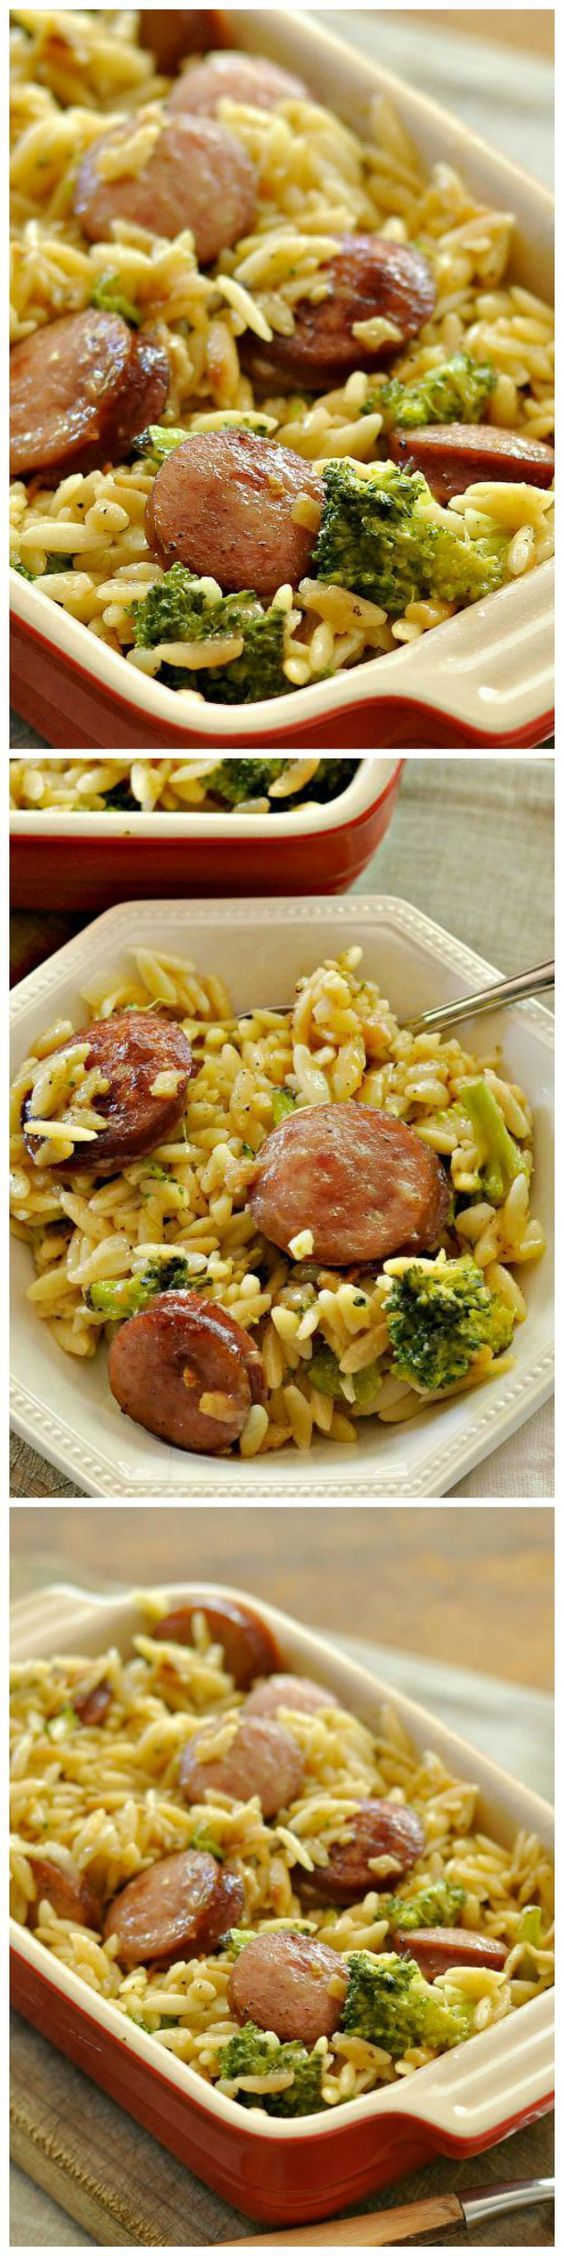 Smoked Sausage and Cheesy Orzo!- Make this tonight with Johnsonville Smoked Sausage.